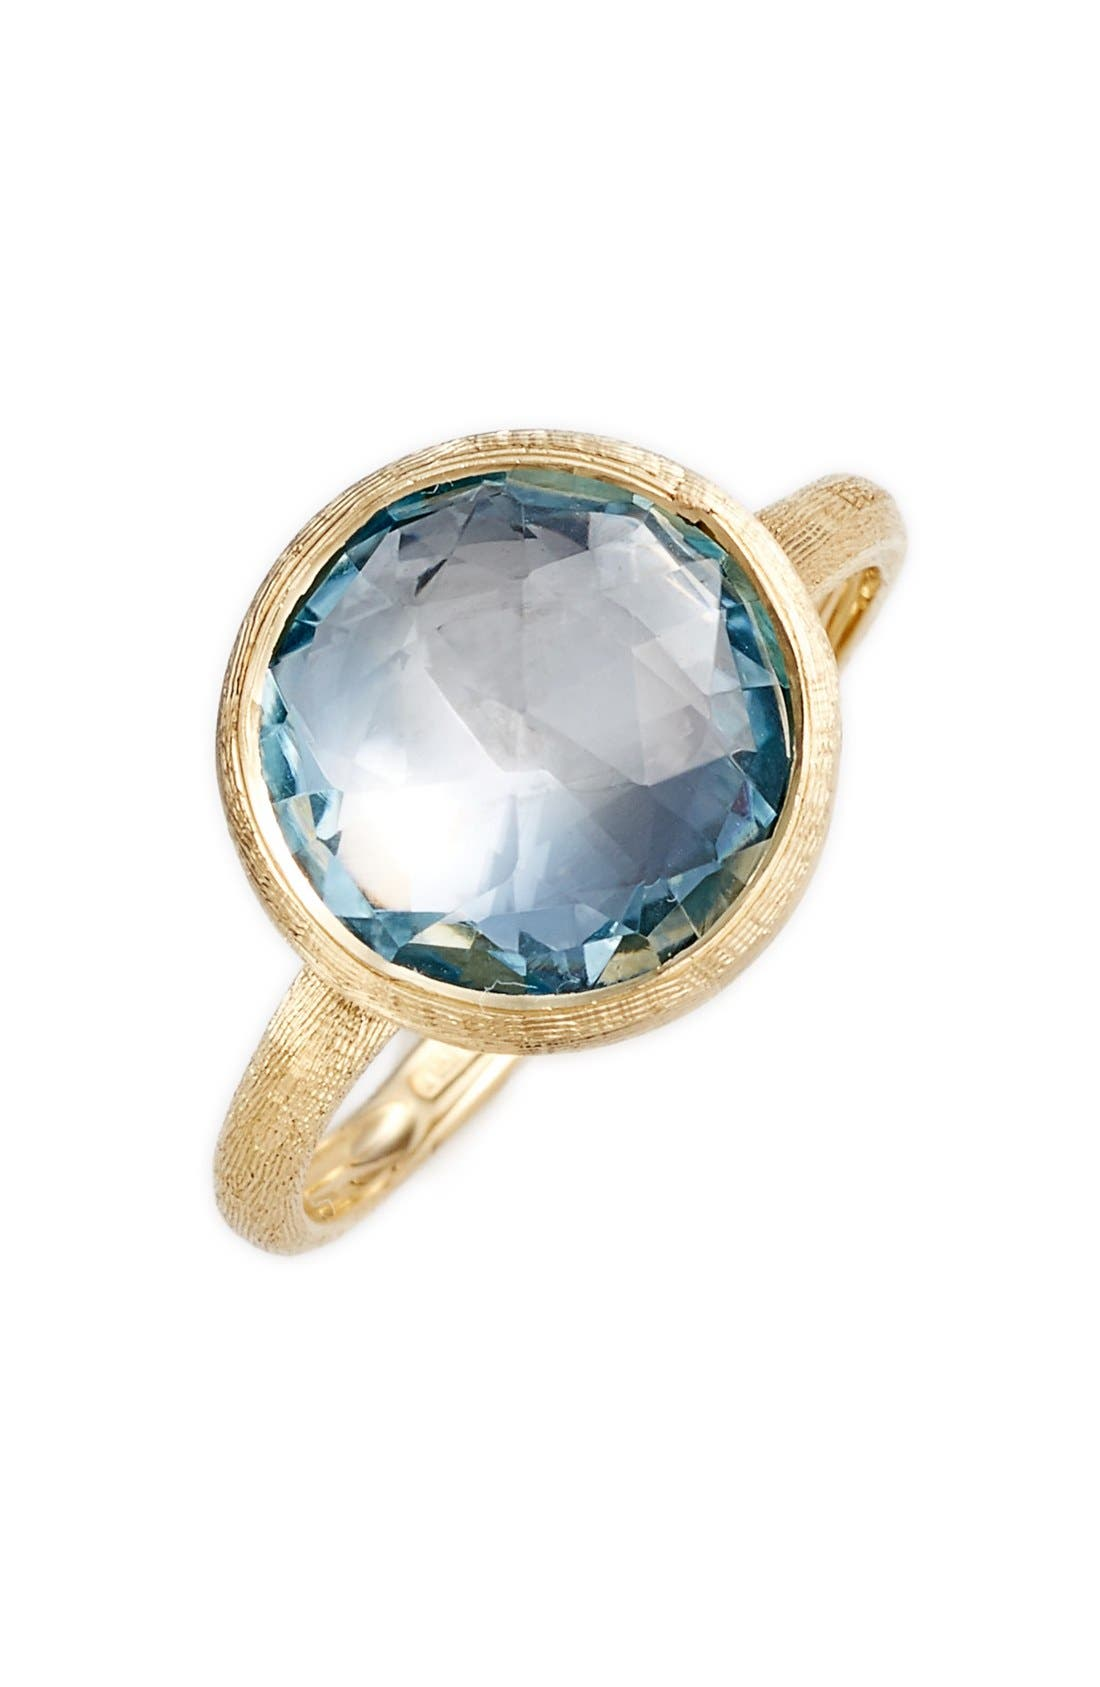 Main Image - Marco Bicego Stackable Semiprecious Stone Ring